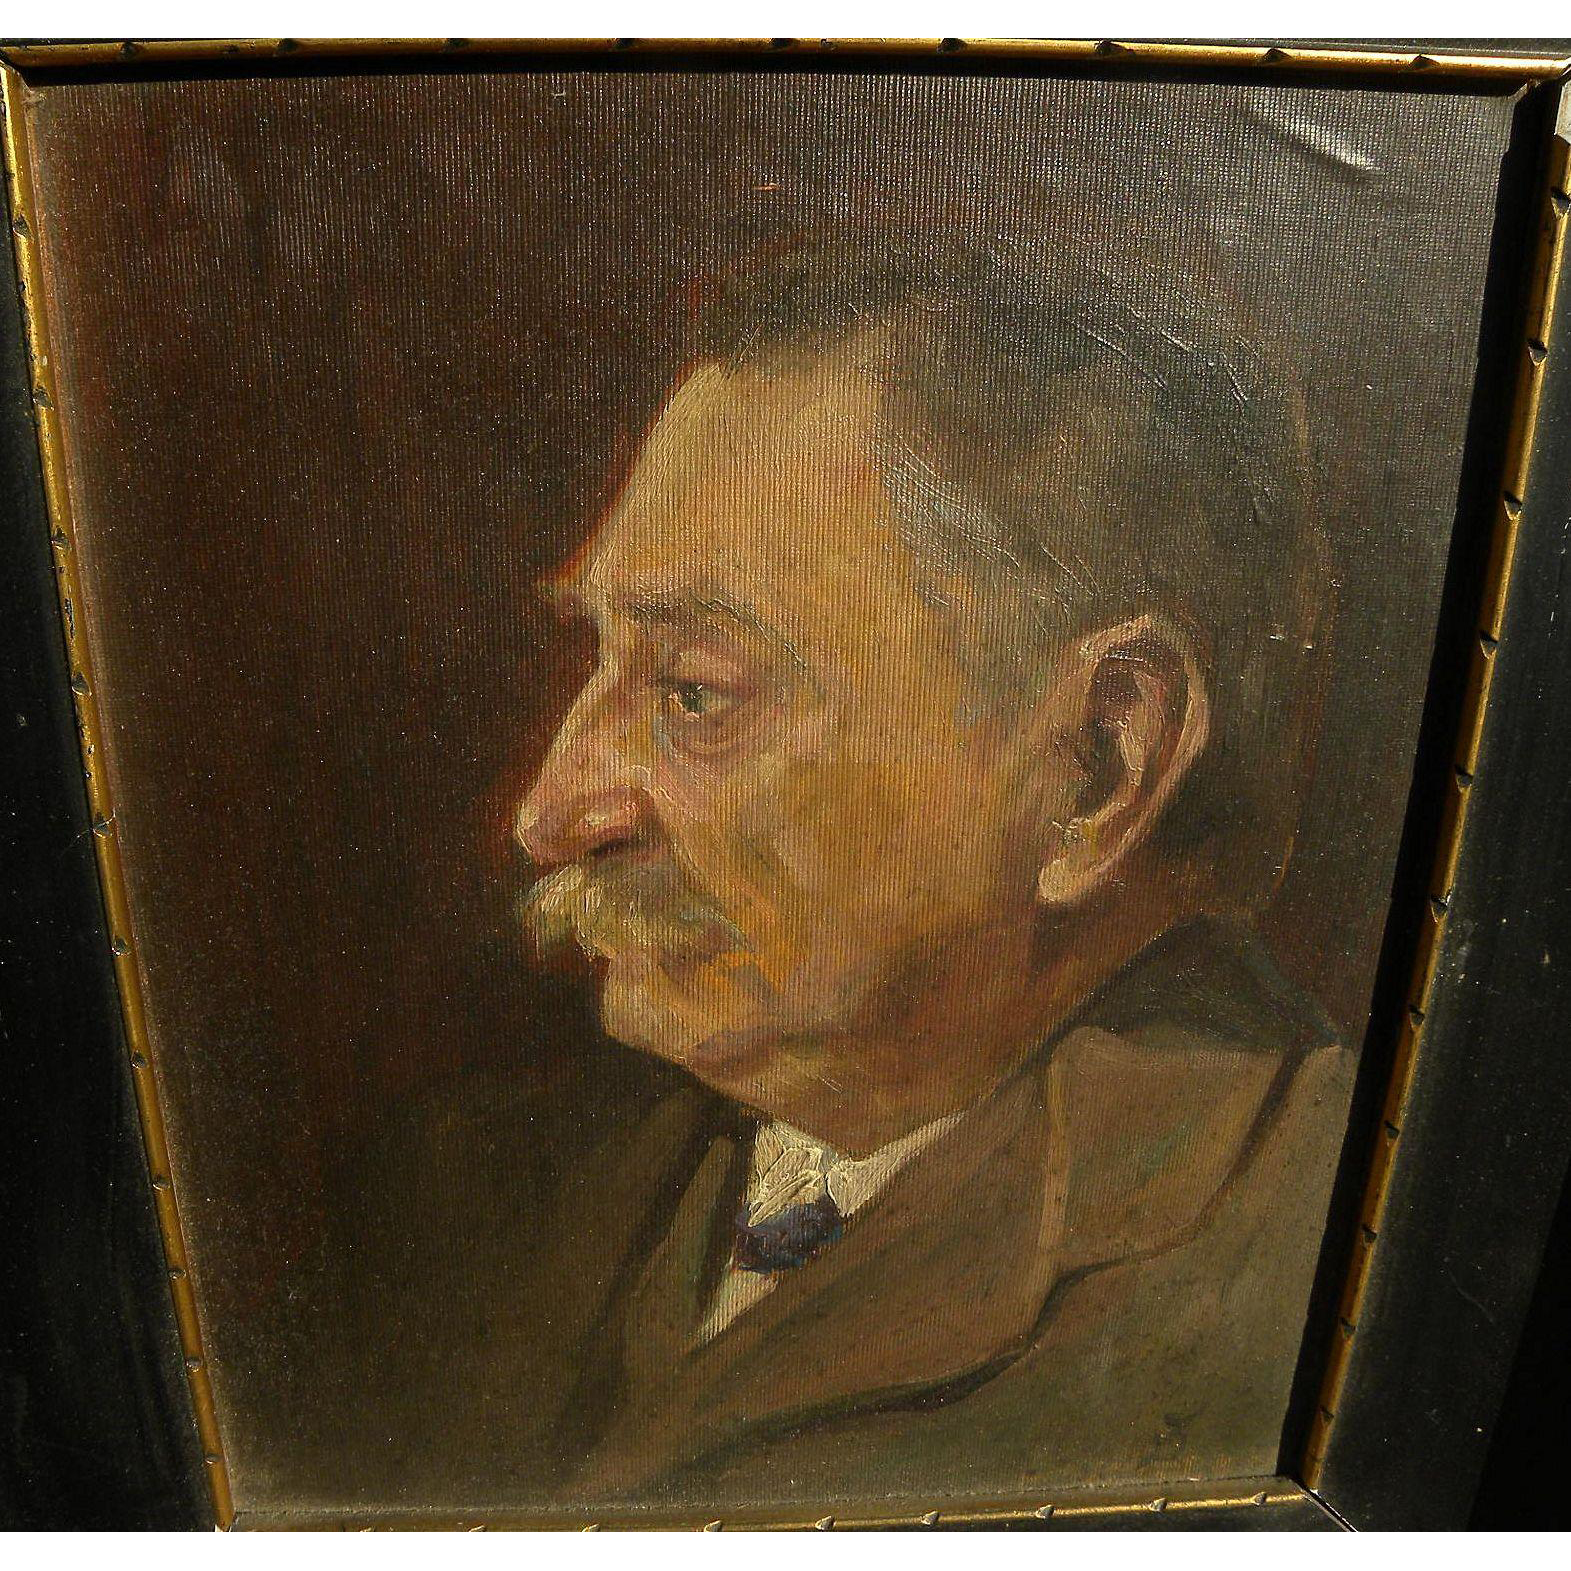 Czech early 20th century portrait painting of a man signed with monogram